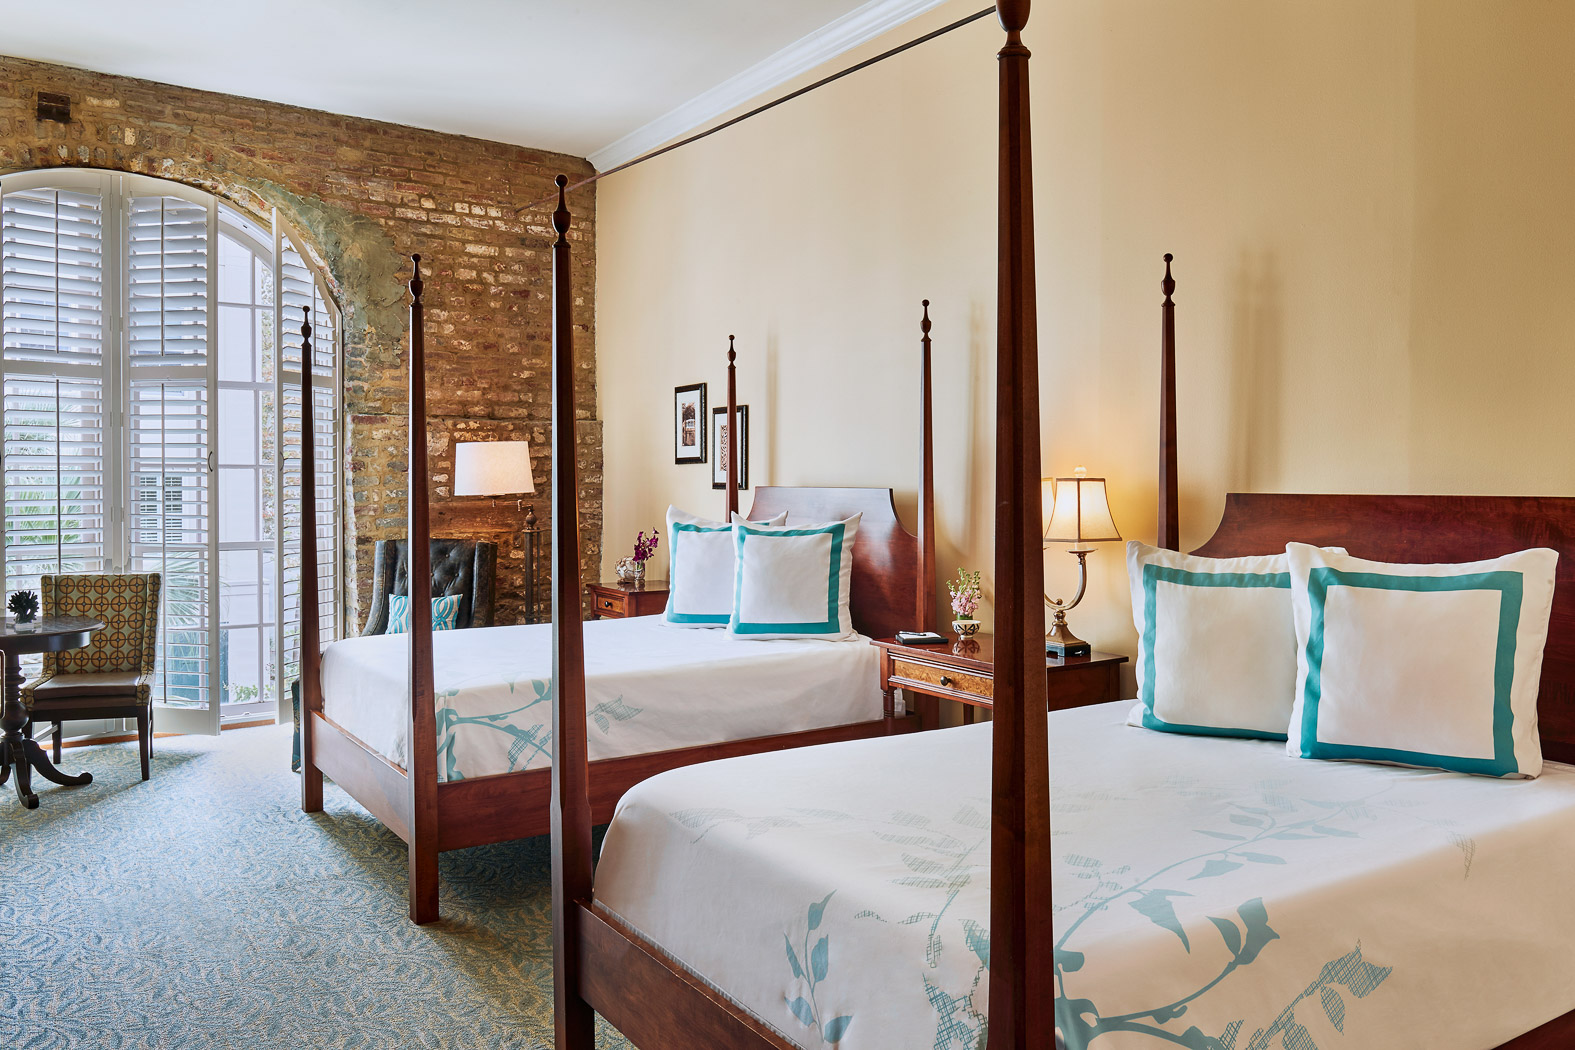 Charleston sc hotels rooms suites harbourview inn - 2 bedroom hotels in charleston sc ...